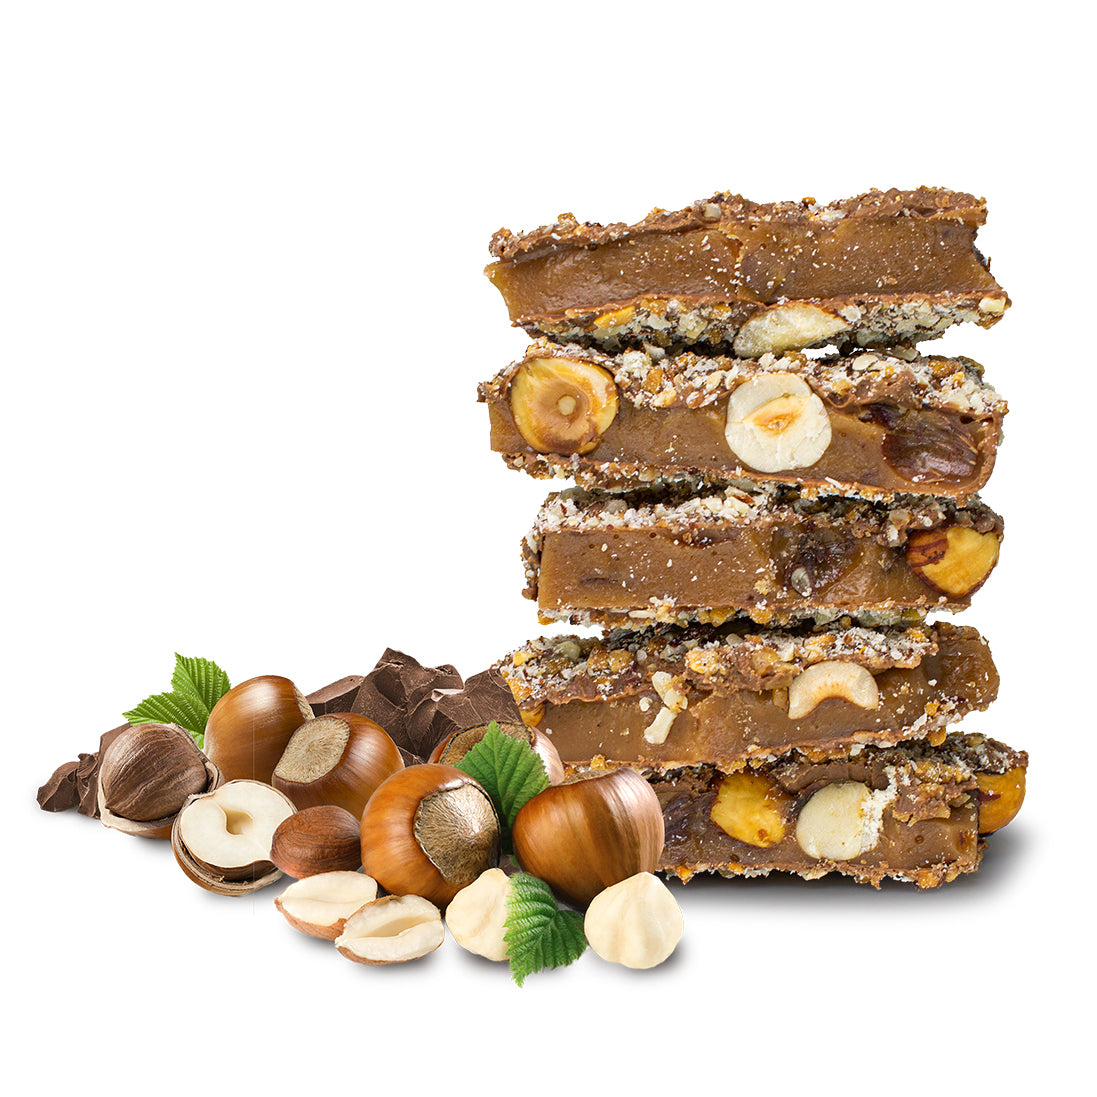 Two Brothers Toffee:  Hazelnut Toffee front view with chocolate and hazelnuts.